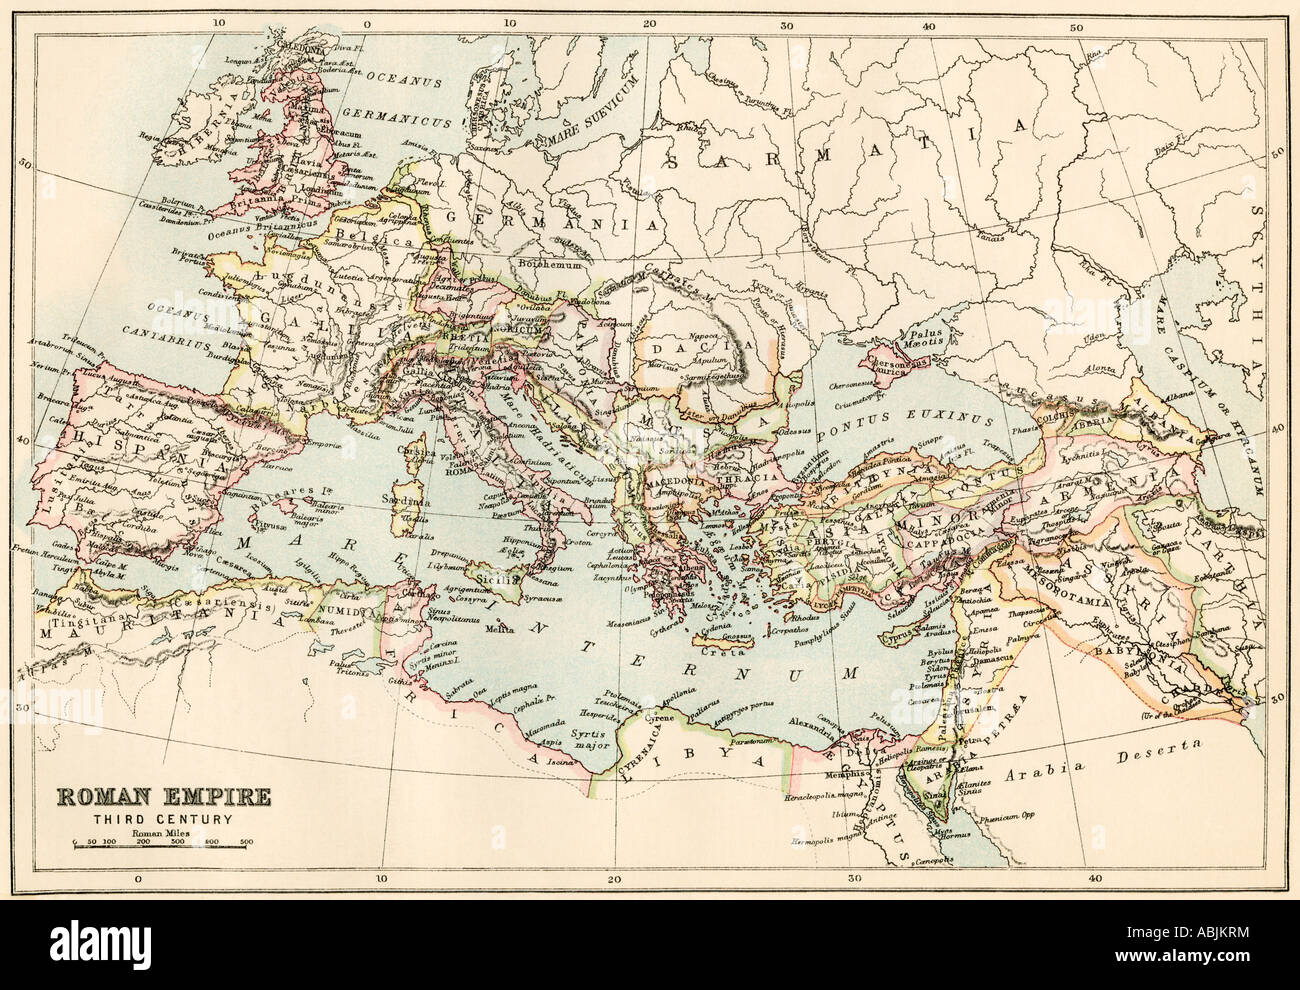 Map of the Roman Empire in the third century AD. Color lithograph - Stock Image